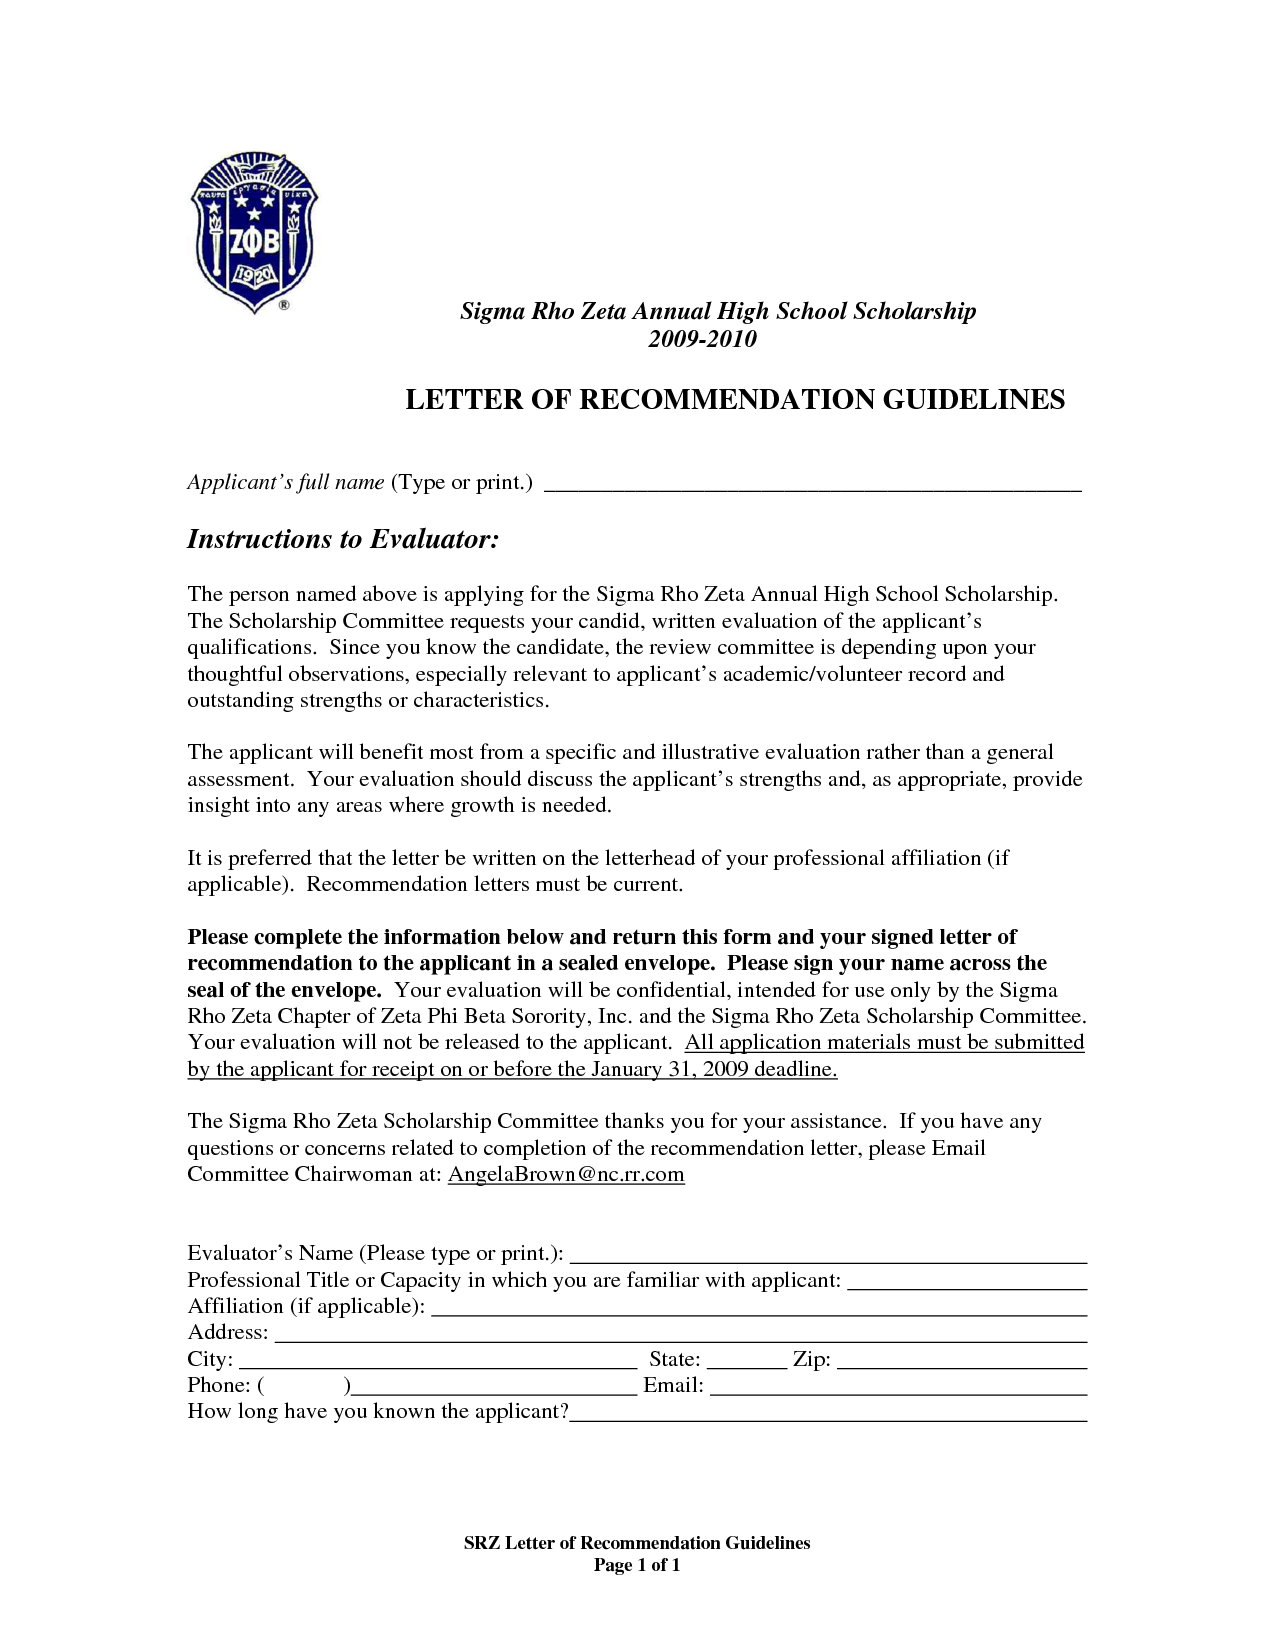 Letters Of Recommendation Format  Free Letter Of Recommendation